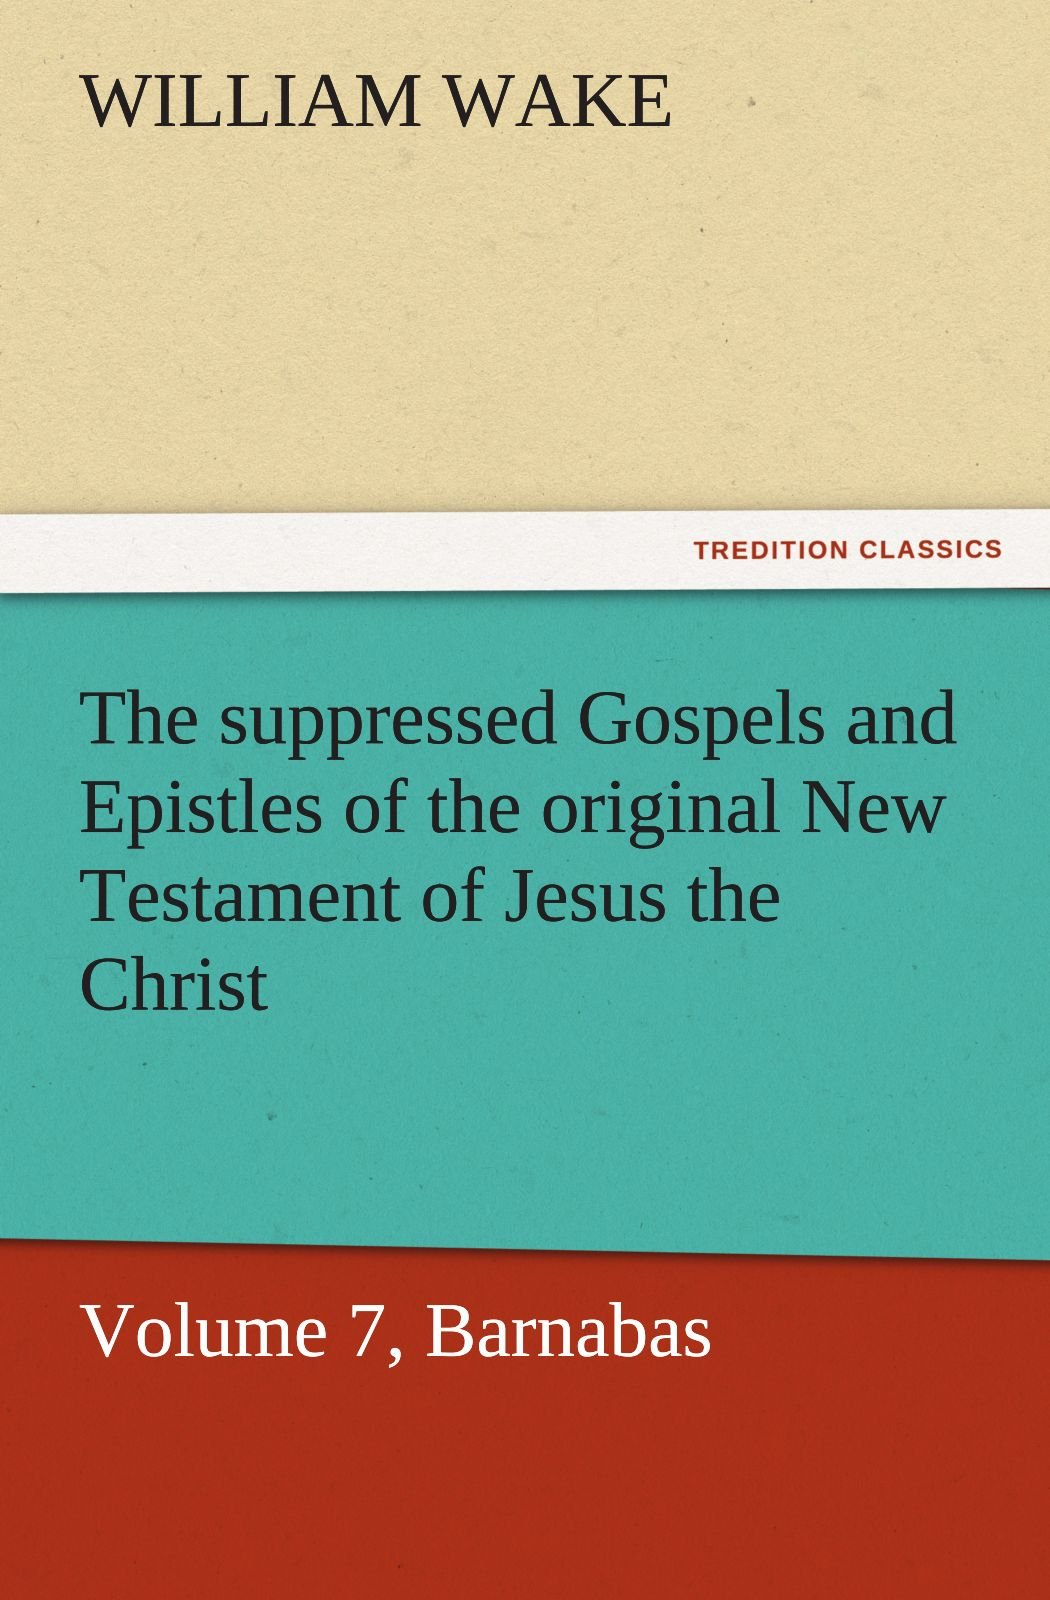 Read Online The suppressed Gospels and Epistles of the original New Testament of Jesus the Christ, Volume 7, Barnabas (TREDITION CLASSICS) pdf